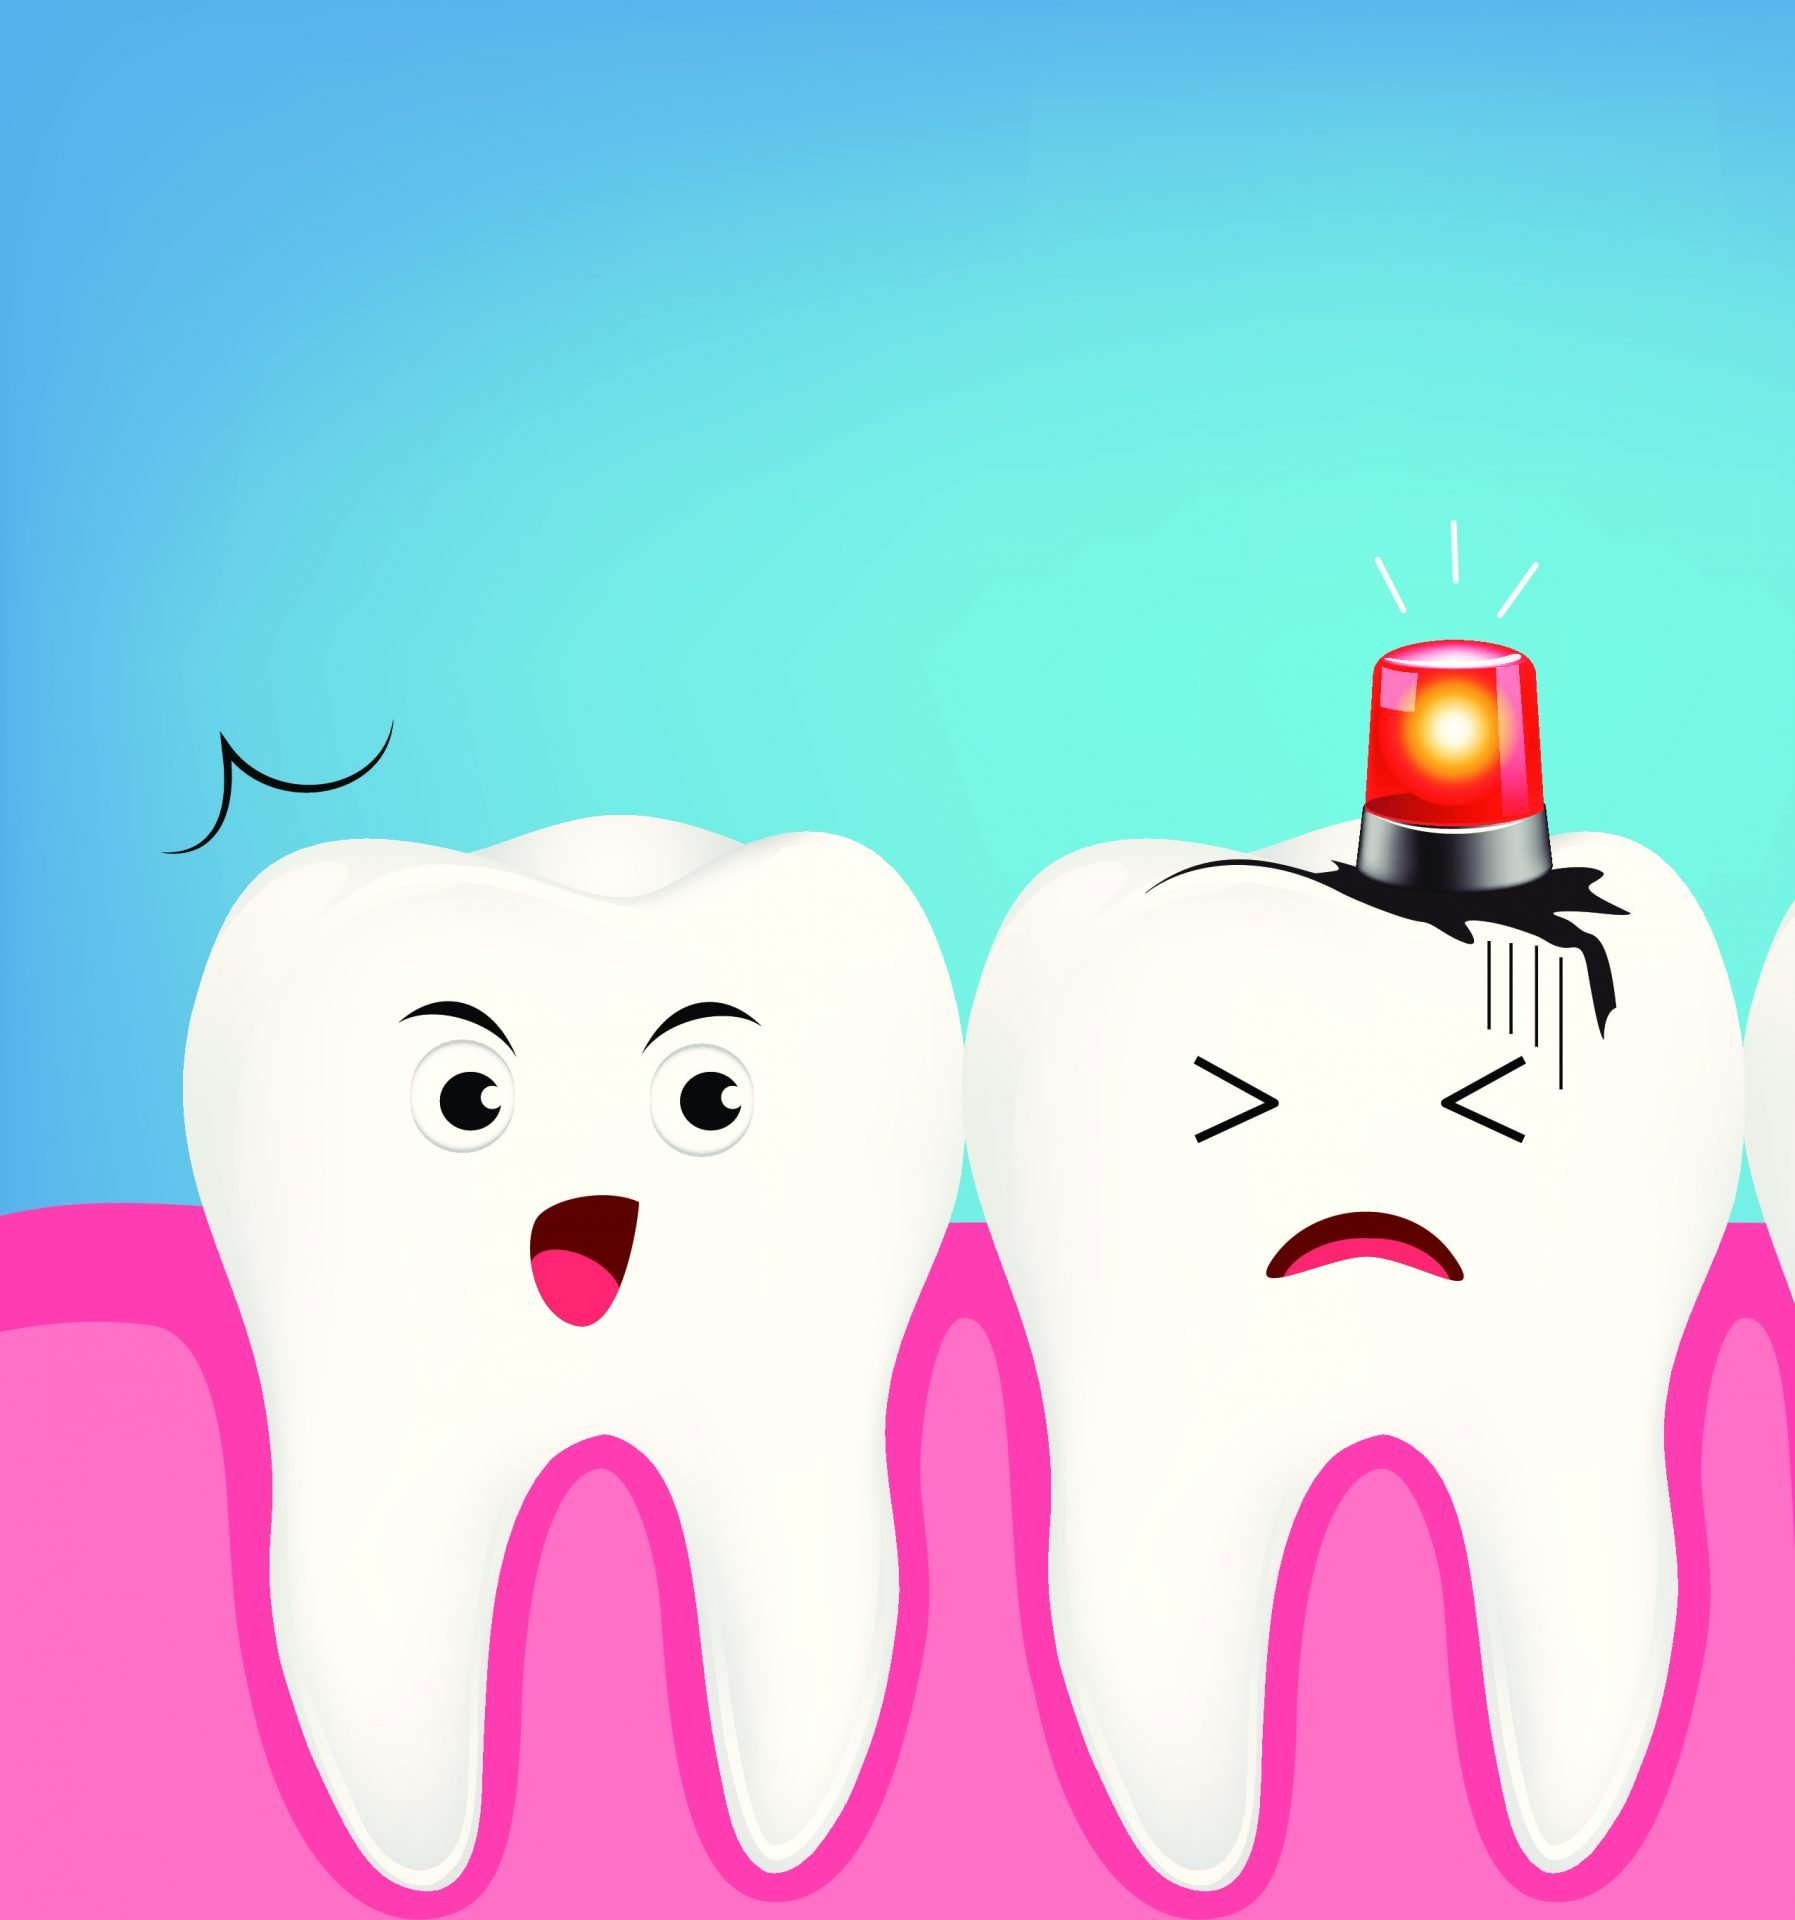 Cartoon tooth with dental emergency light on showing a crack in the tooth